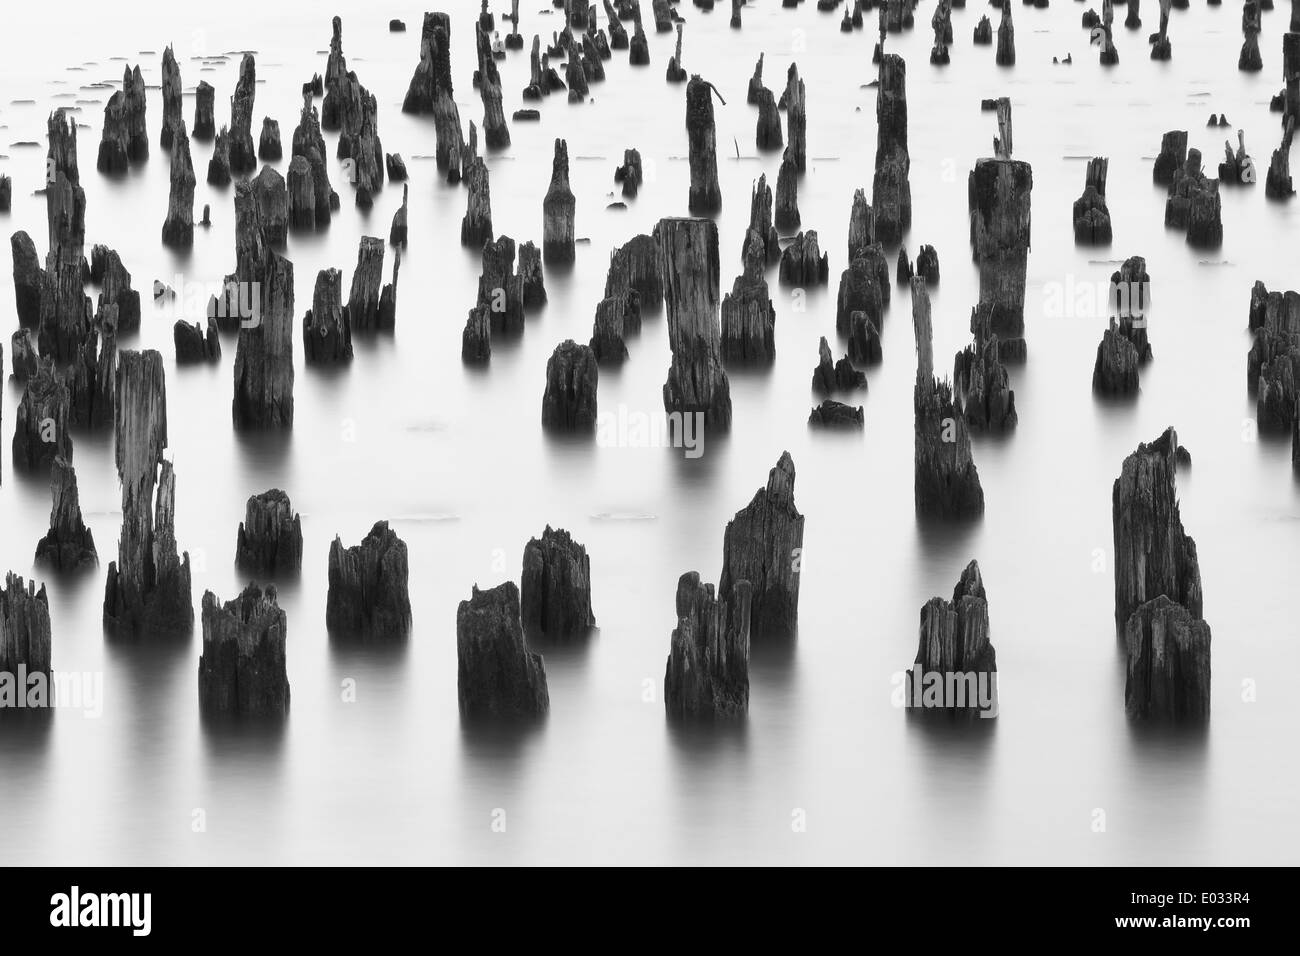 Old wooden posts in water, Long exposure - Stock Image